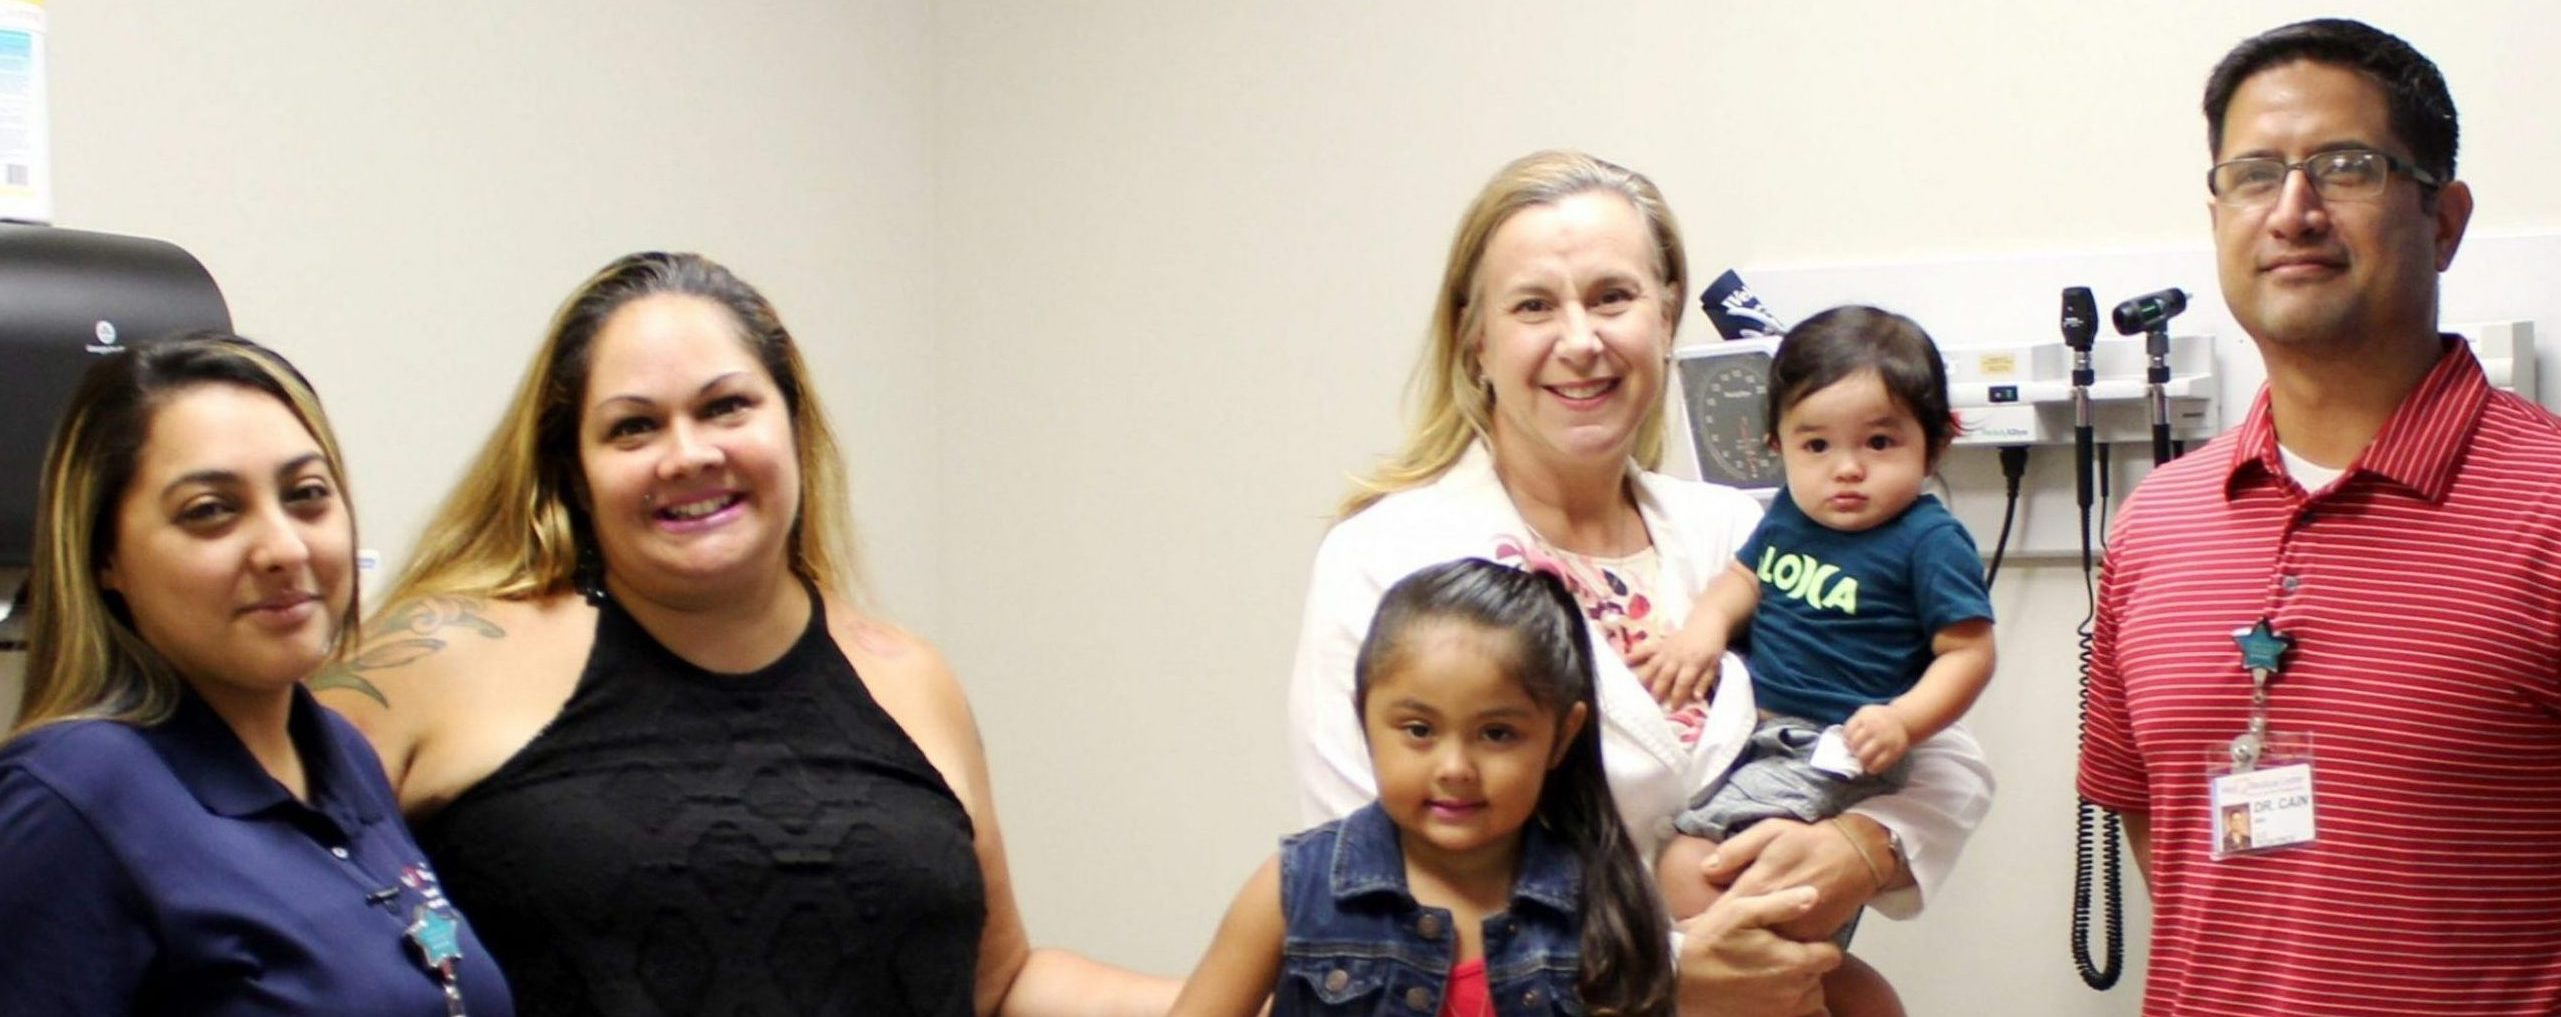 (left to right) Briana Militante-Kawaiea, Outpatient Clinical Assistant, Carla Morton, her daughter Sophia and son Callen, Dr. Jennifer Walker and Dr. Miki Cain.